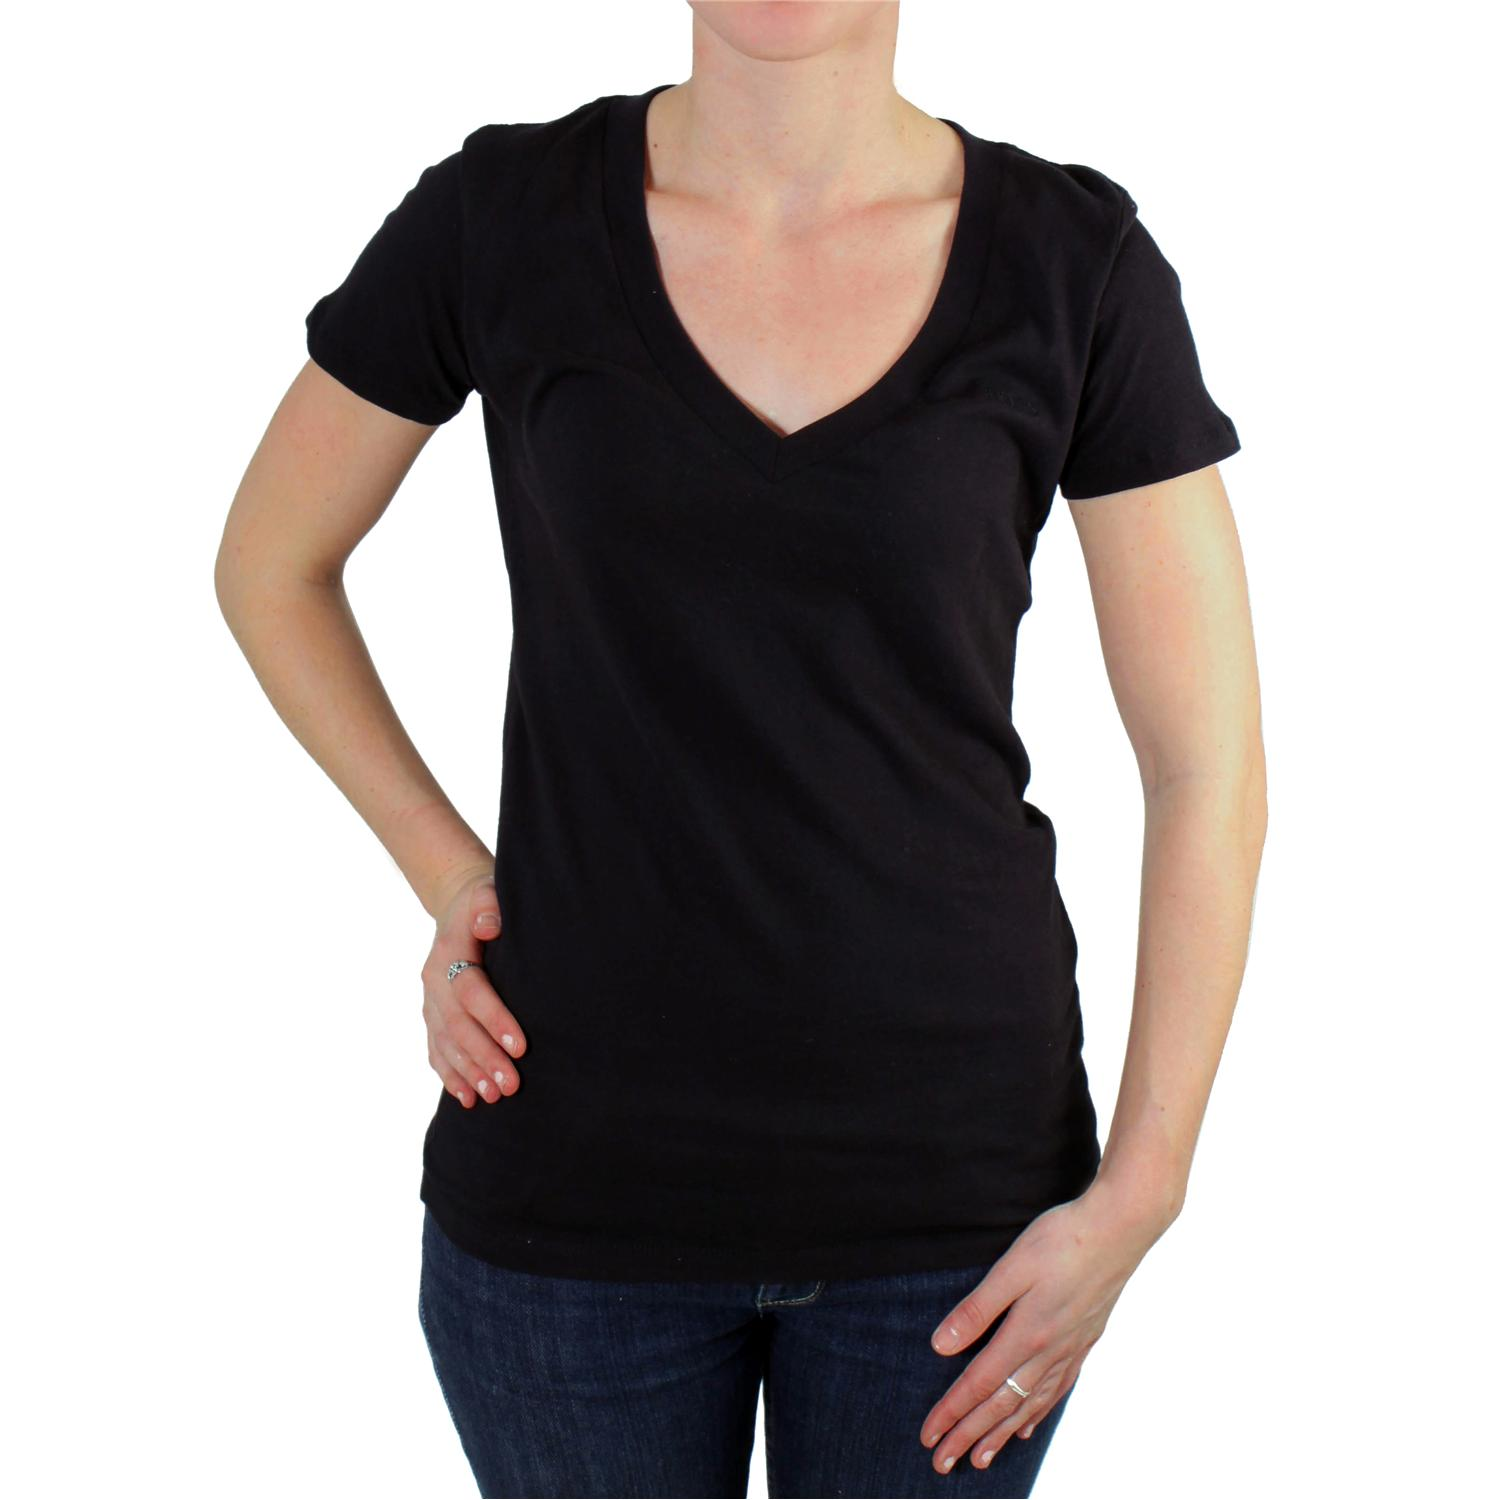 Find great deals on eBay for womens black v neck t shirt. Shop with confidence.